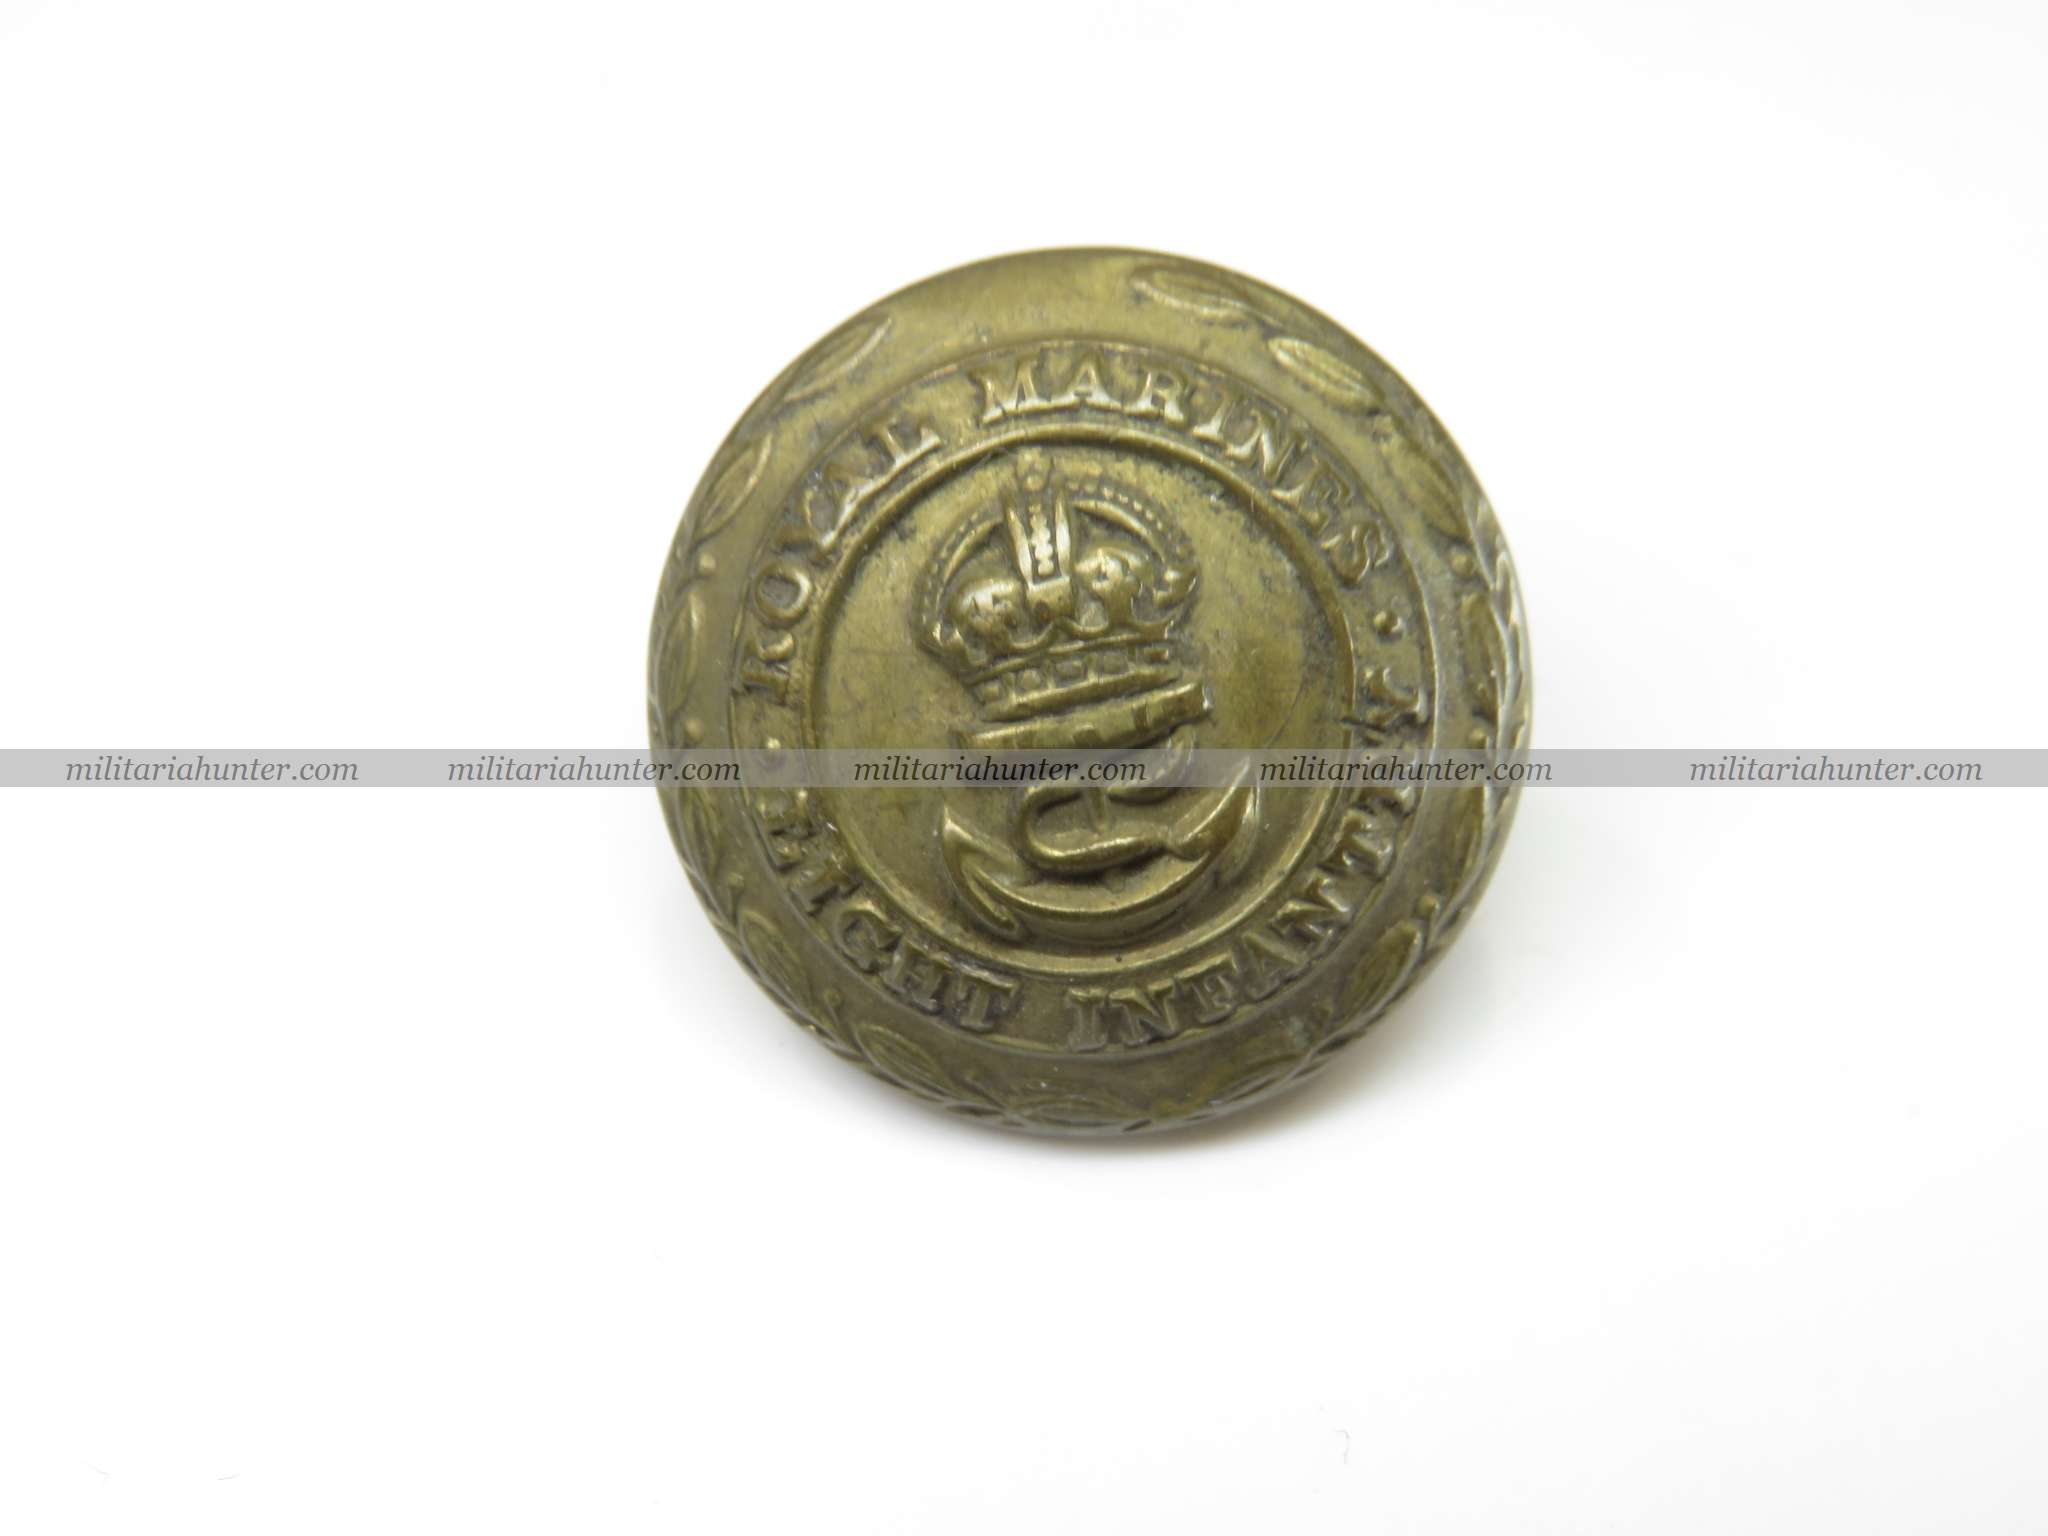 militaria : ww1 Royal Marines Light Infantry button